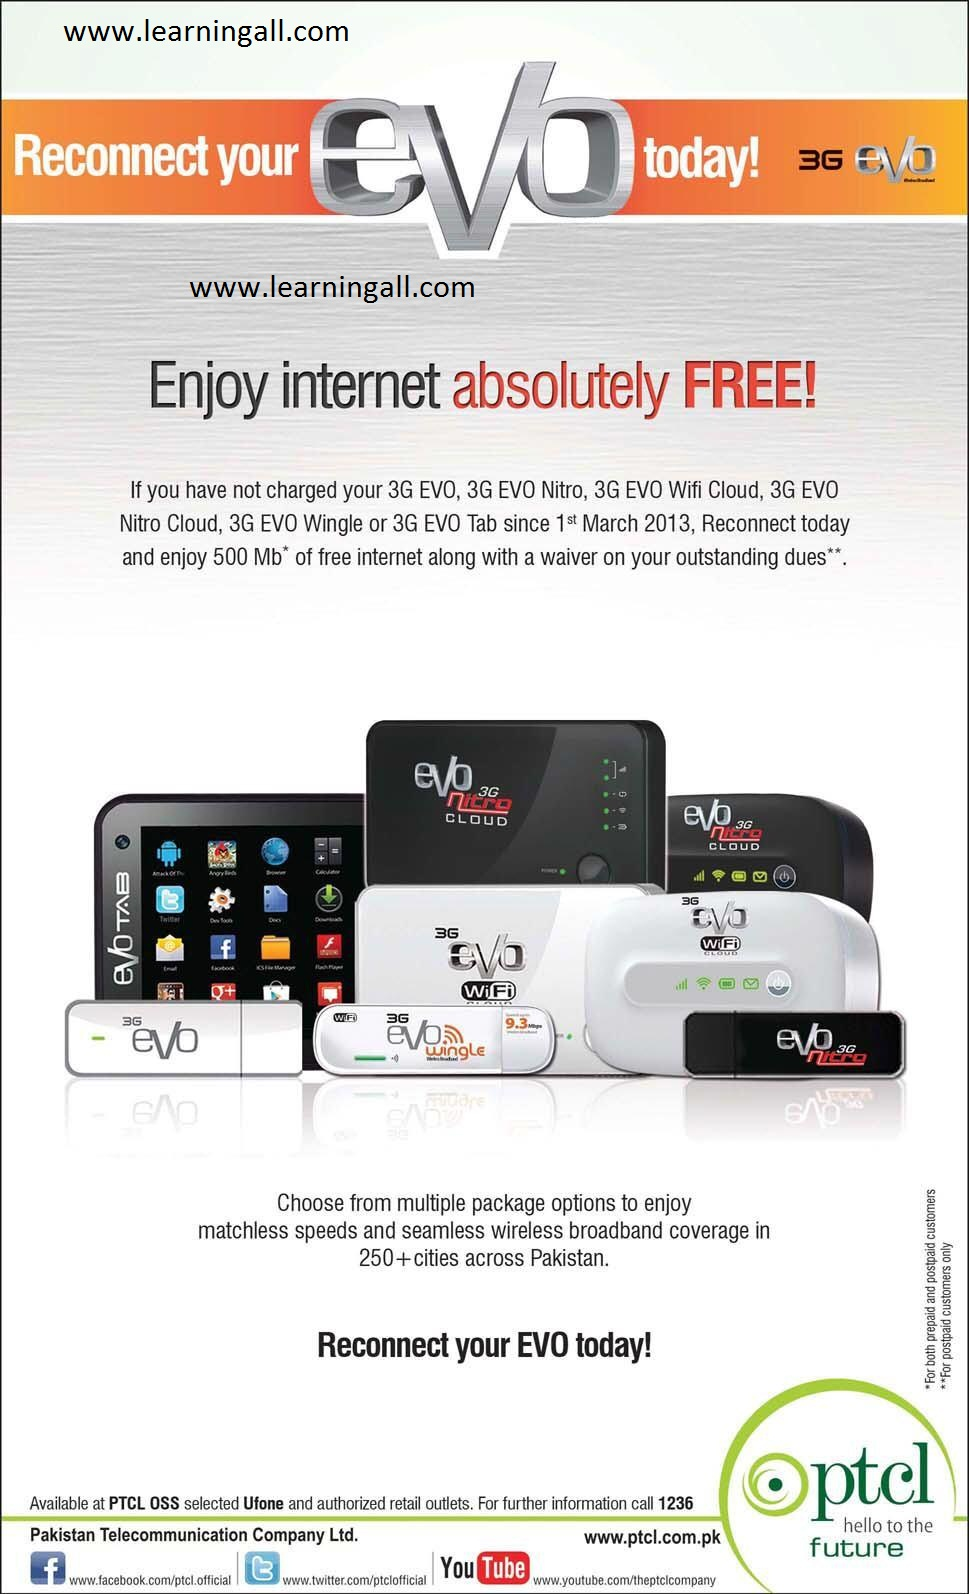 PTCL Evo Device Reconnect offer Reconnect PTCL Evo Enjoy 500 MB Internet Absolutely Free